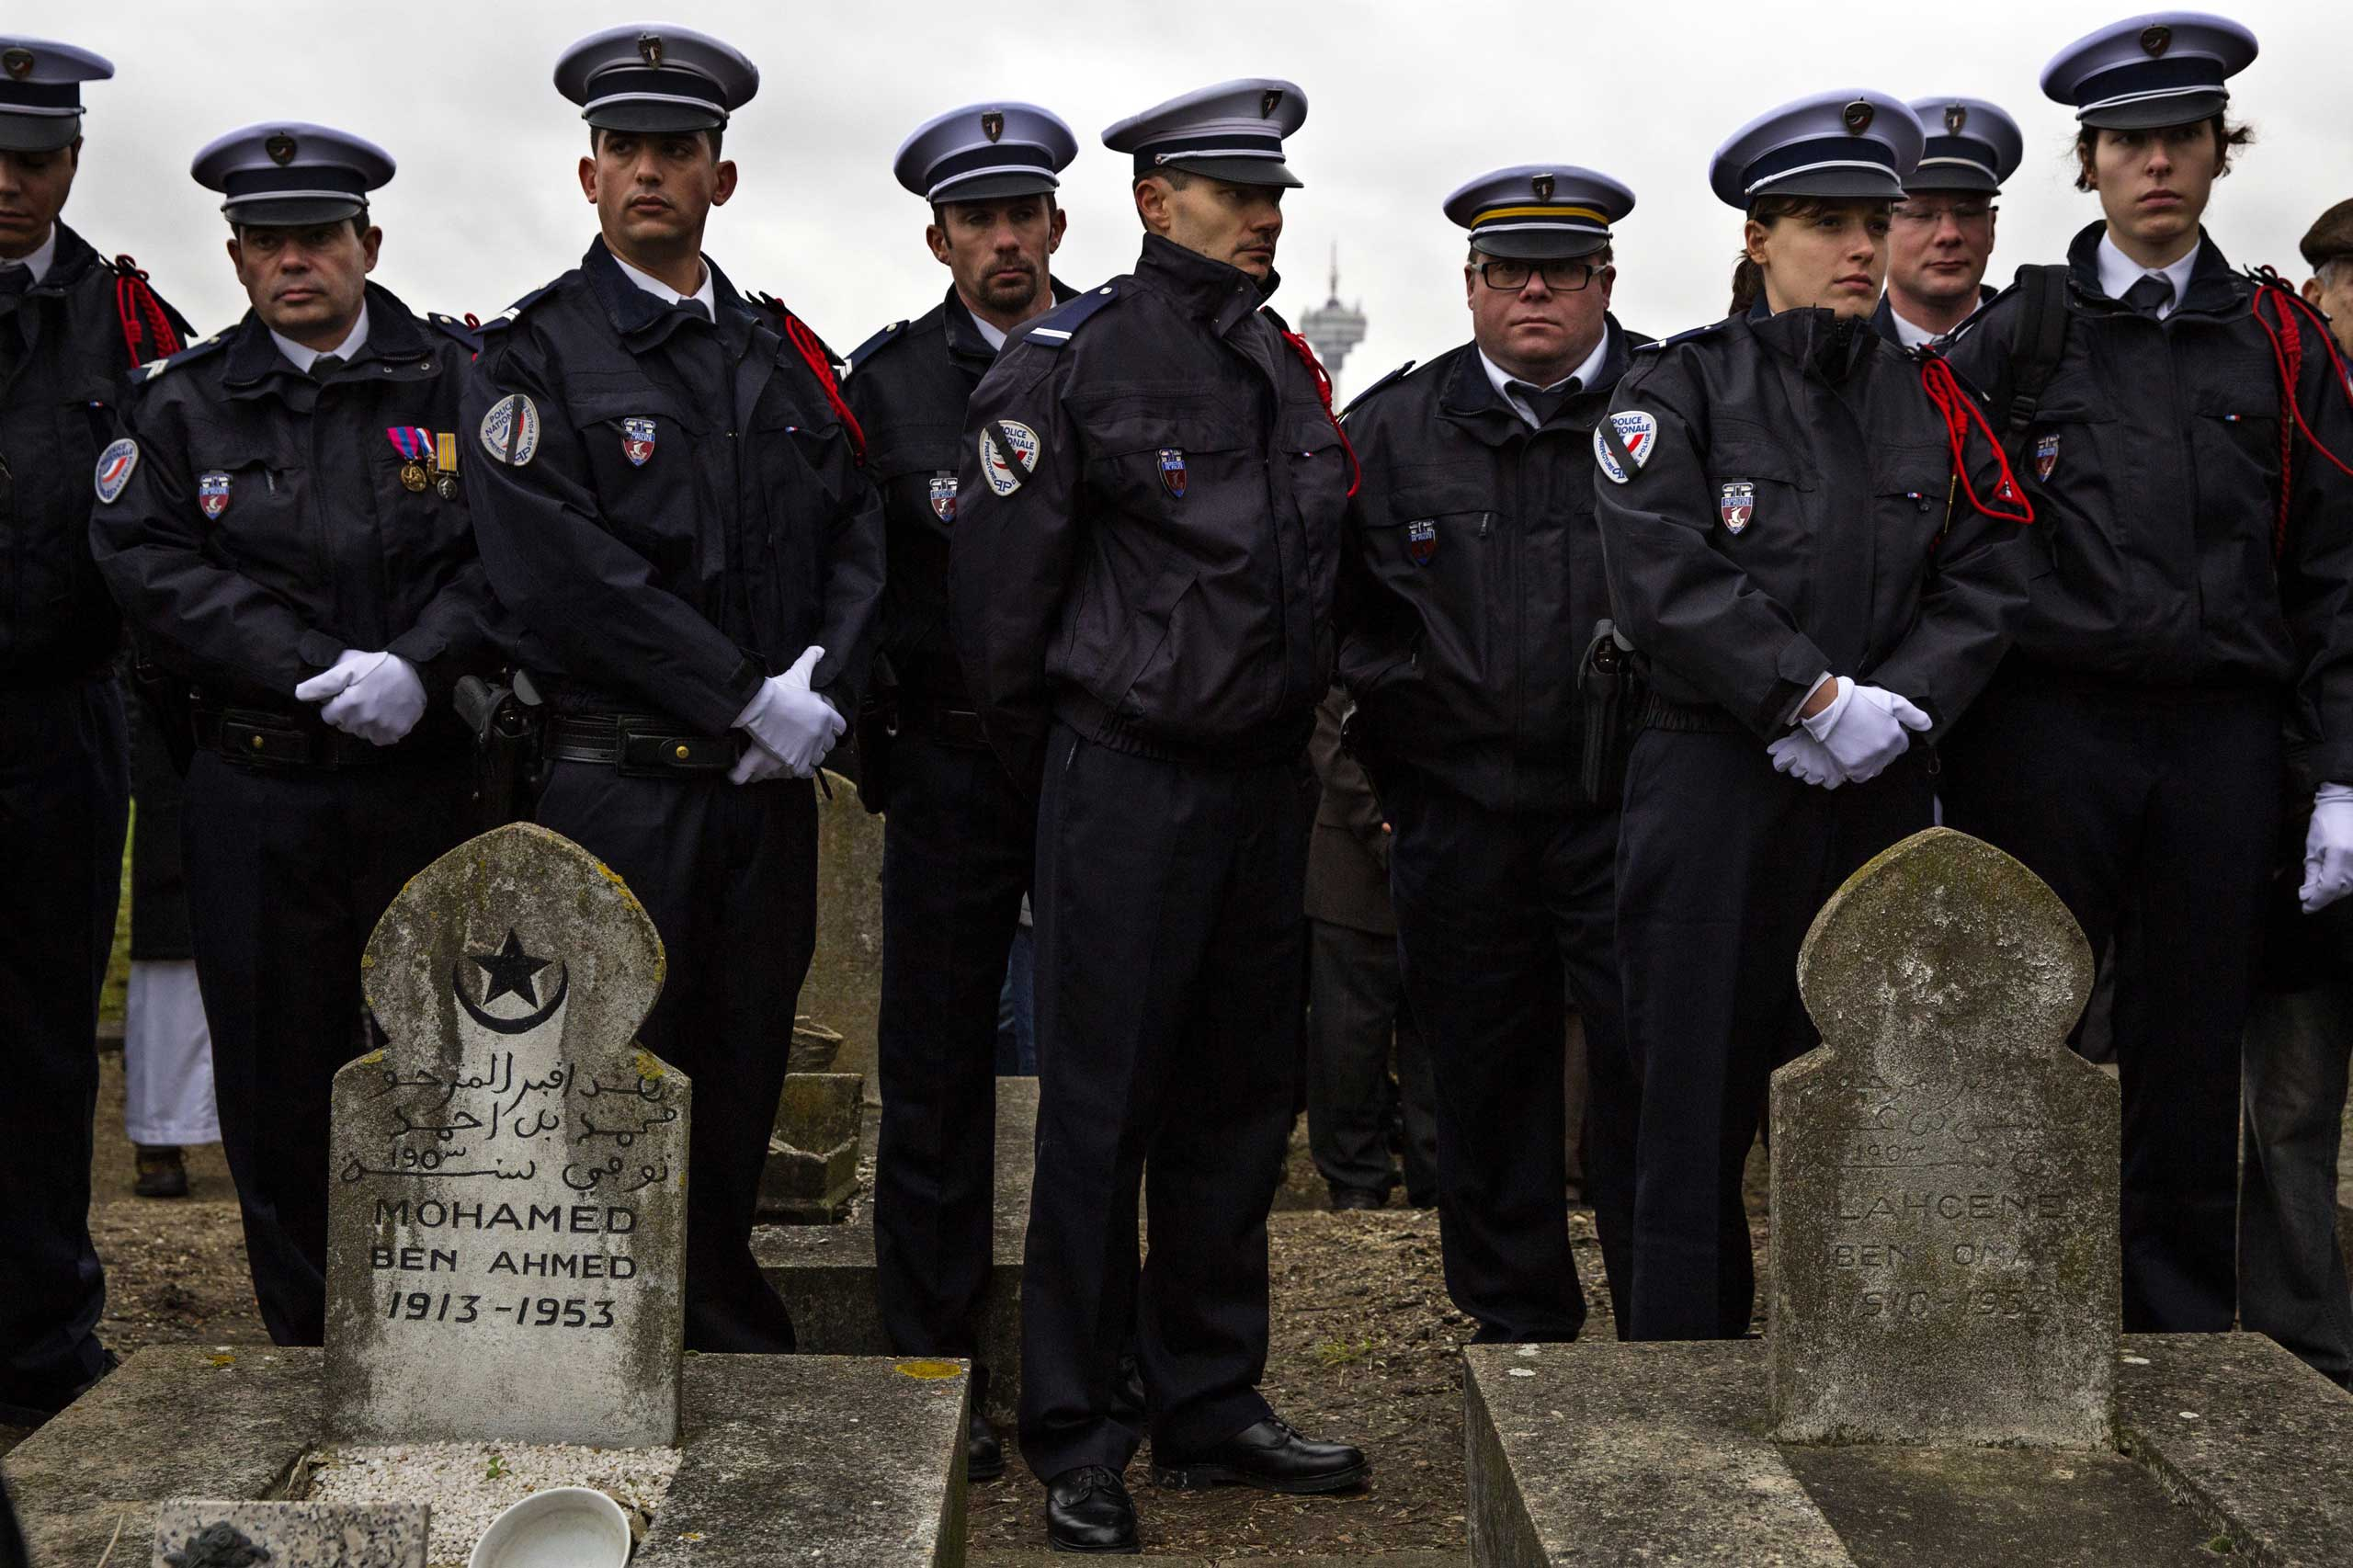 Police Officers line up at the funeral of murdered police officer Ahmed Merabet during the burial at a Muslim cemetery in Bobigny, France, on Jan. 13, 2015.